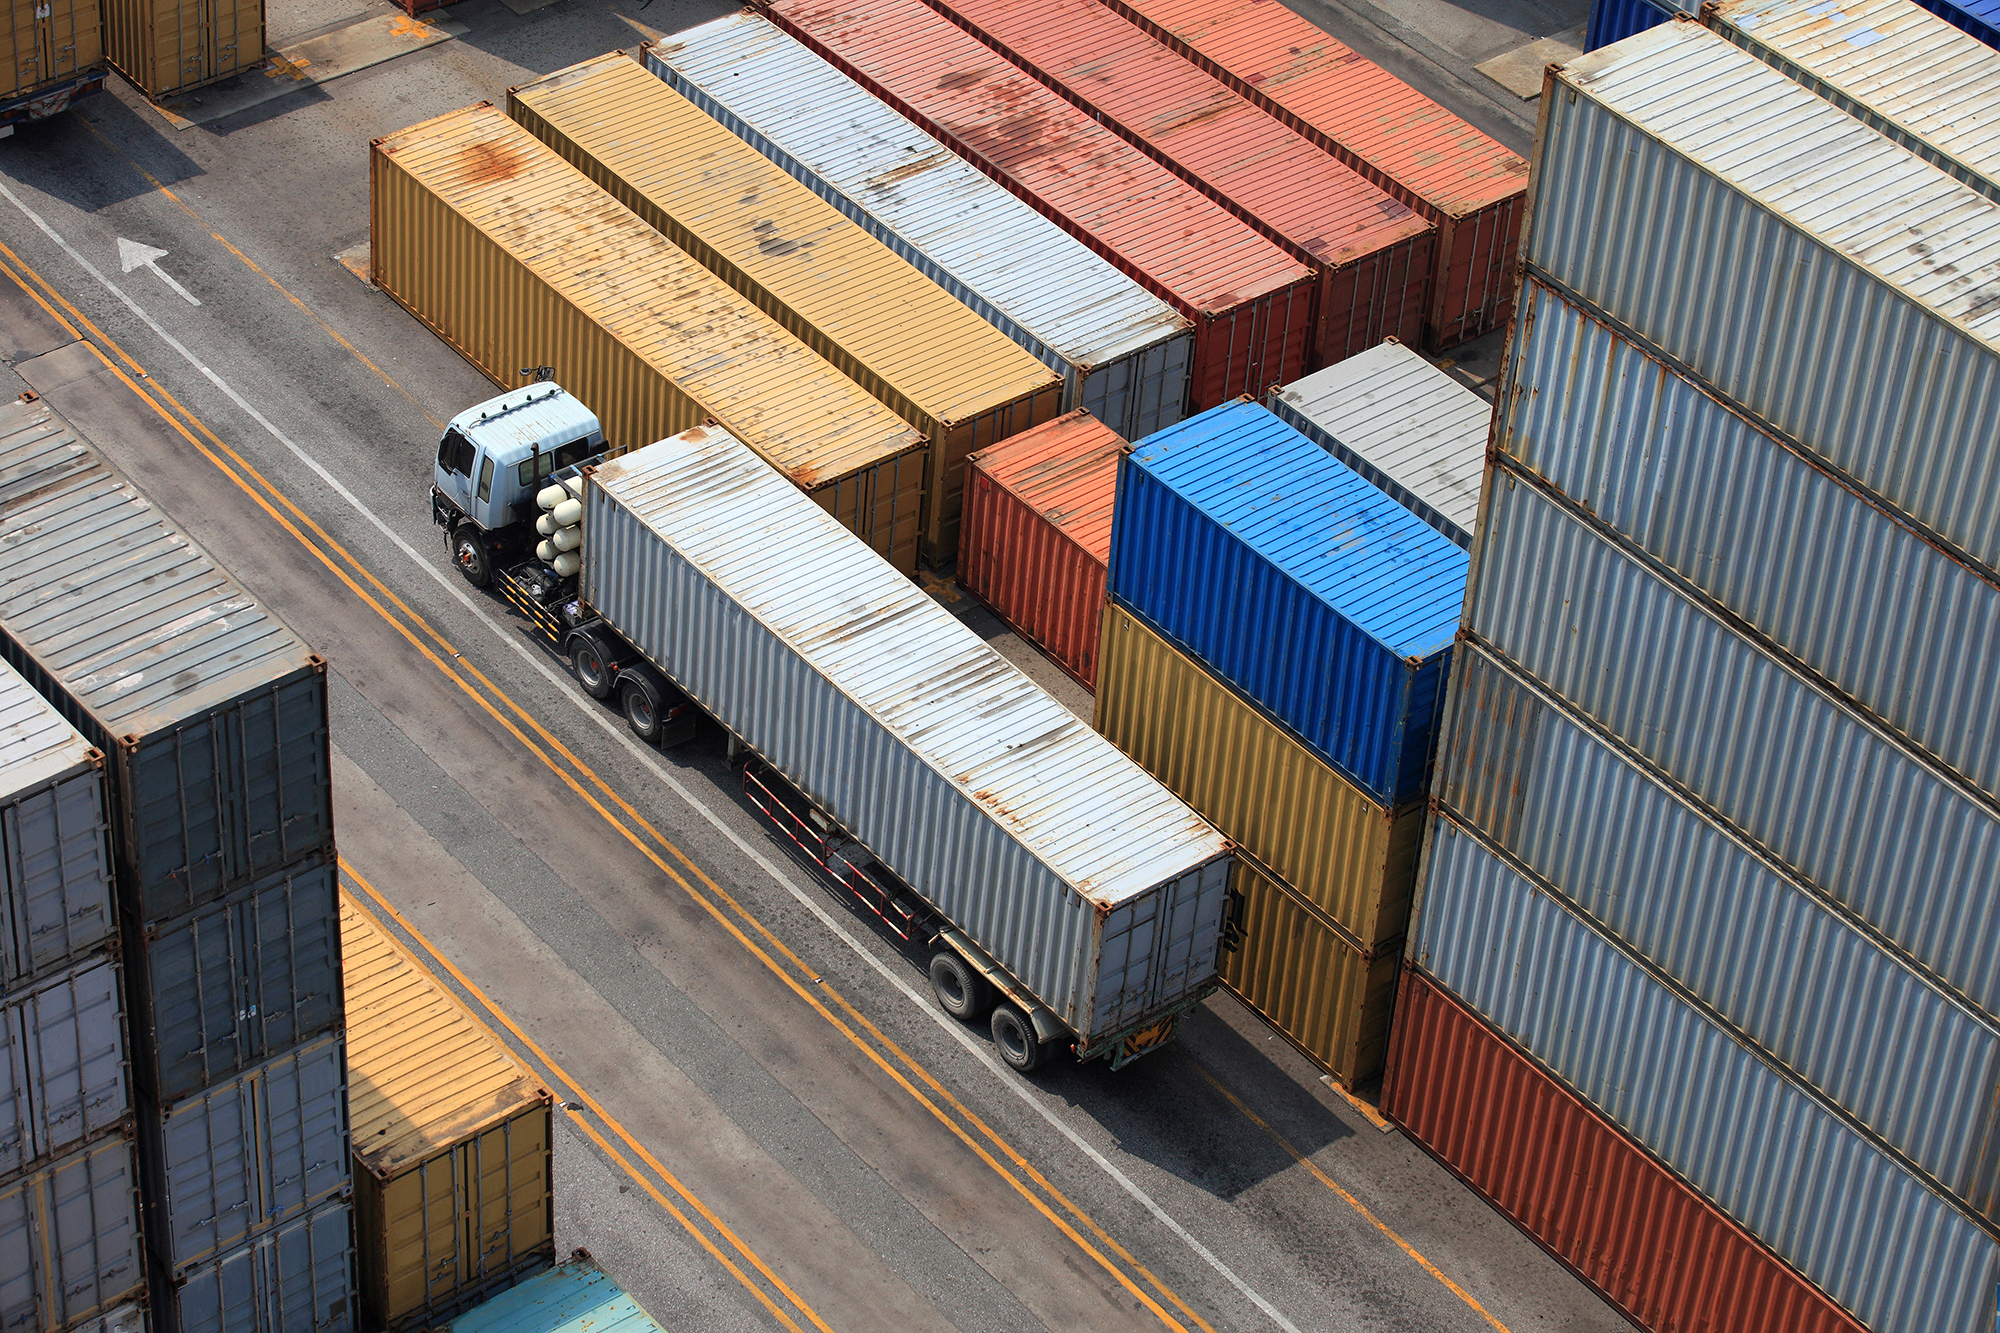 Guide to Customs Clearance For Your Freight at LAX